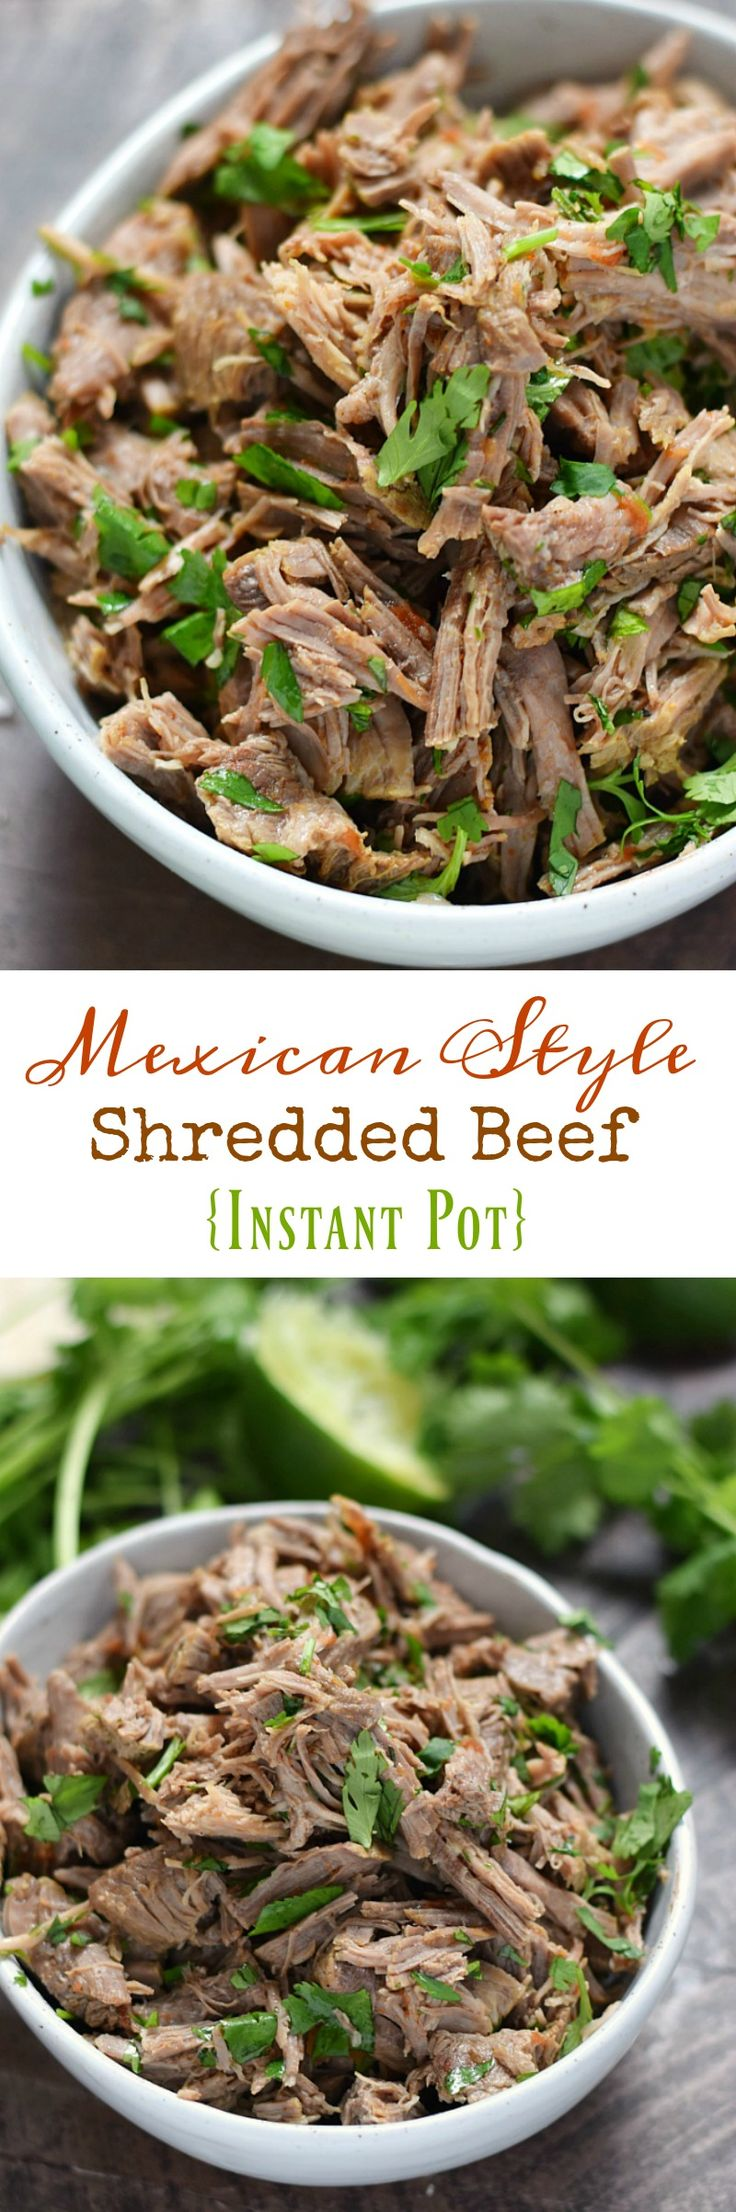 Taco Tuesdays just got more delicious with this easy to make Mexican Style Shredded Beef {Instant Pot} recipe that makes the perfect filling for tacos, burritos, and chimichangas | cookingwithcurls.com